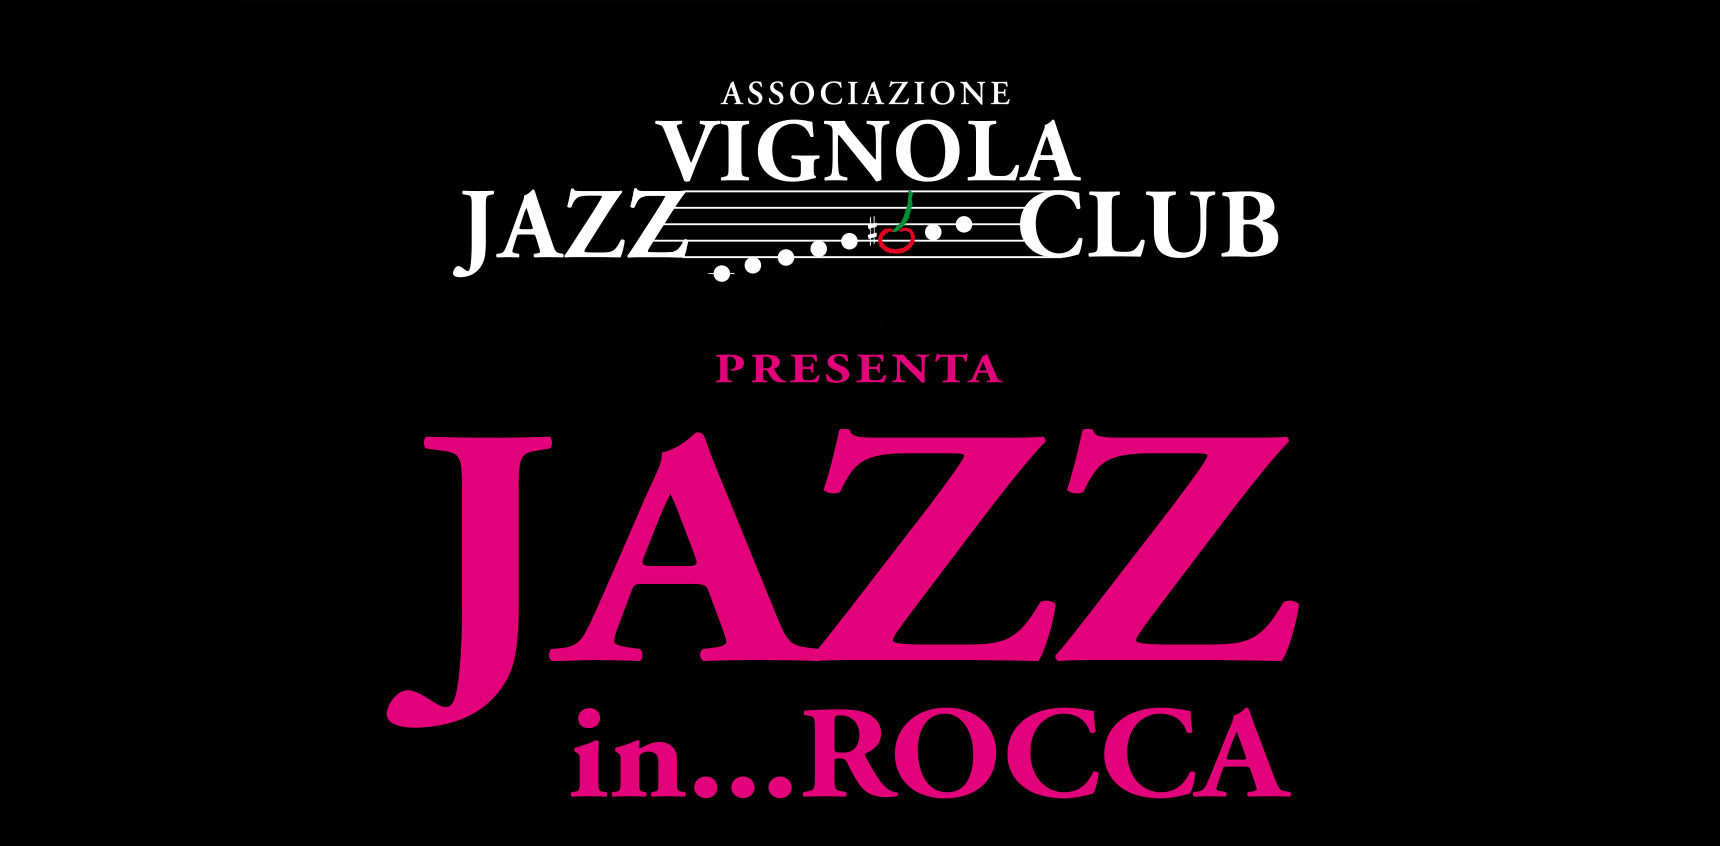 Jazz in Rocca continua con